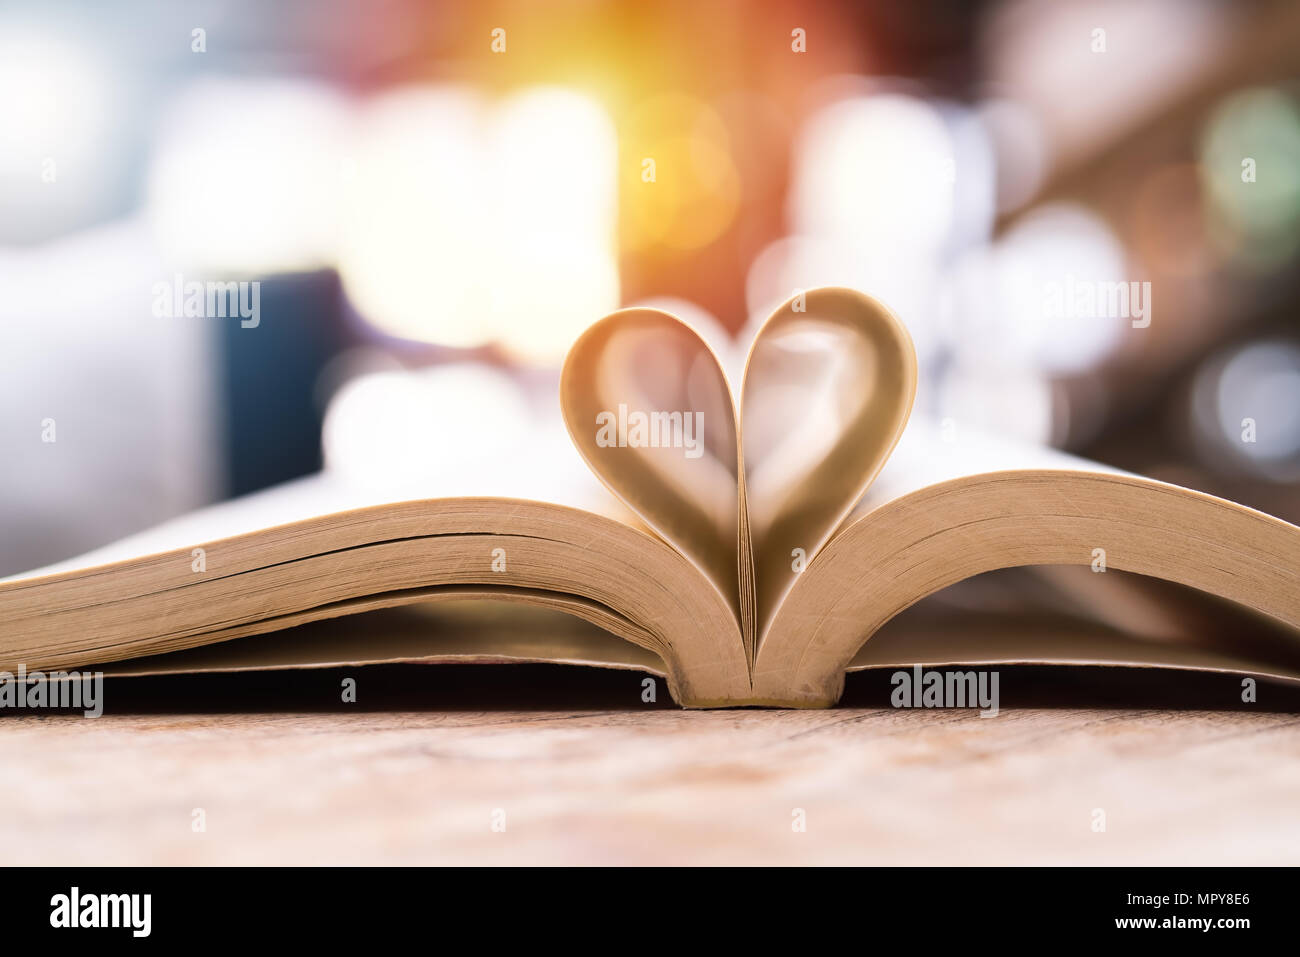 book in heart shape, wisdom and education concept, world book and copyright day - Stock Image